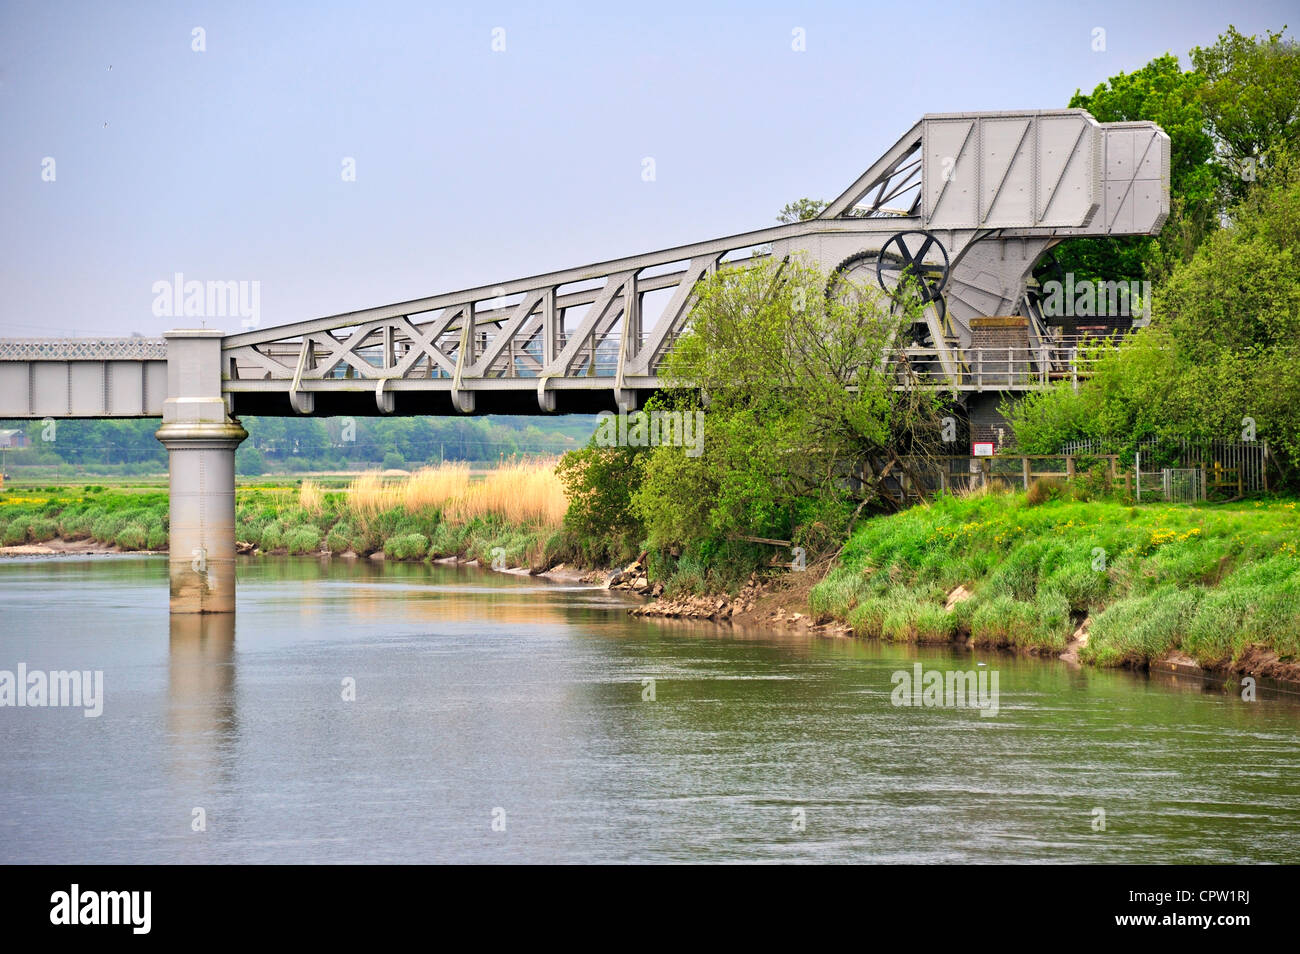 Bascule bridge at Carmarthen, over the River Towy - Stock Image